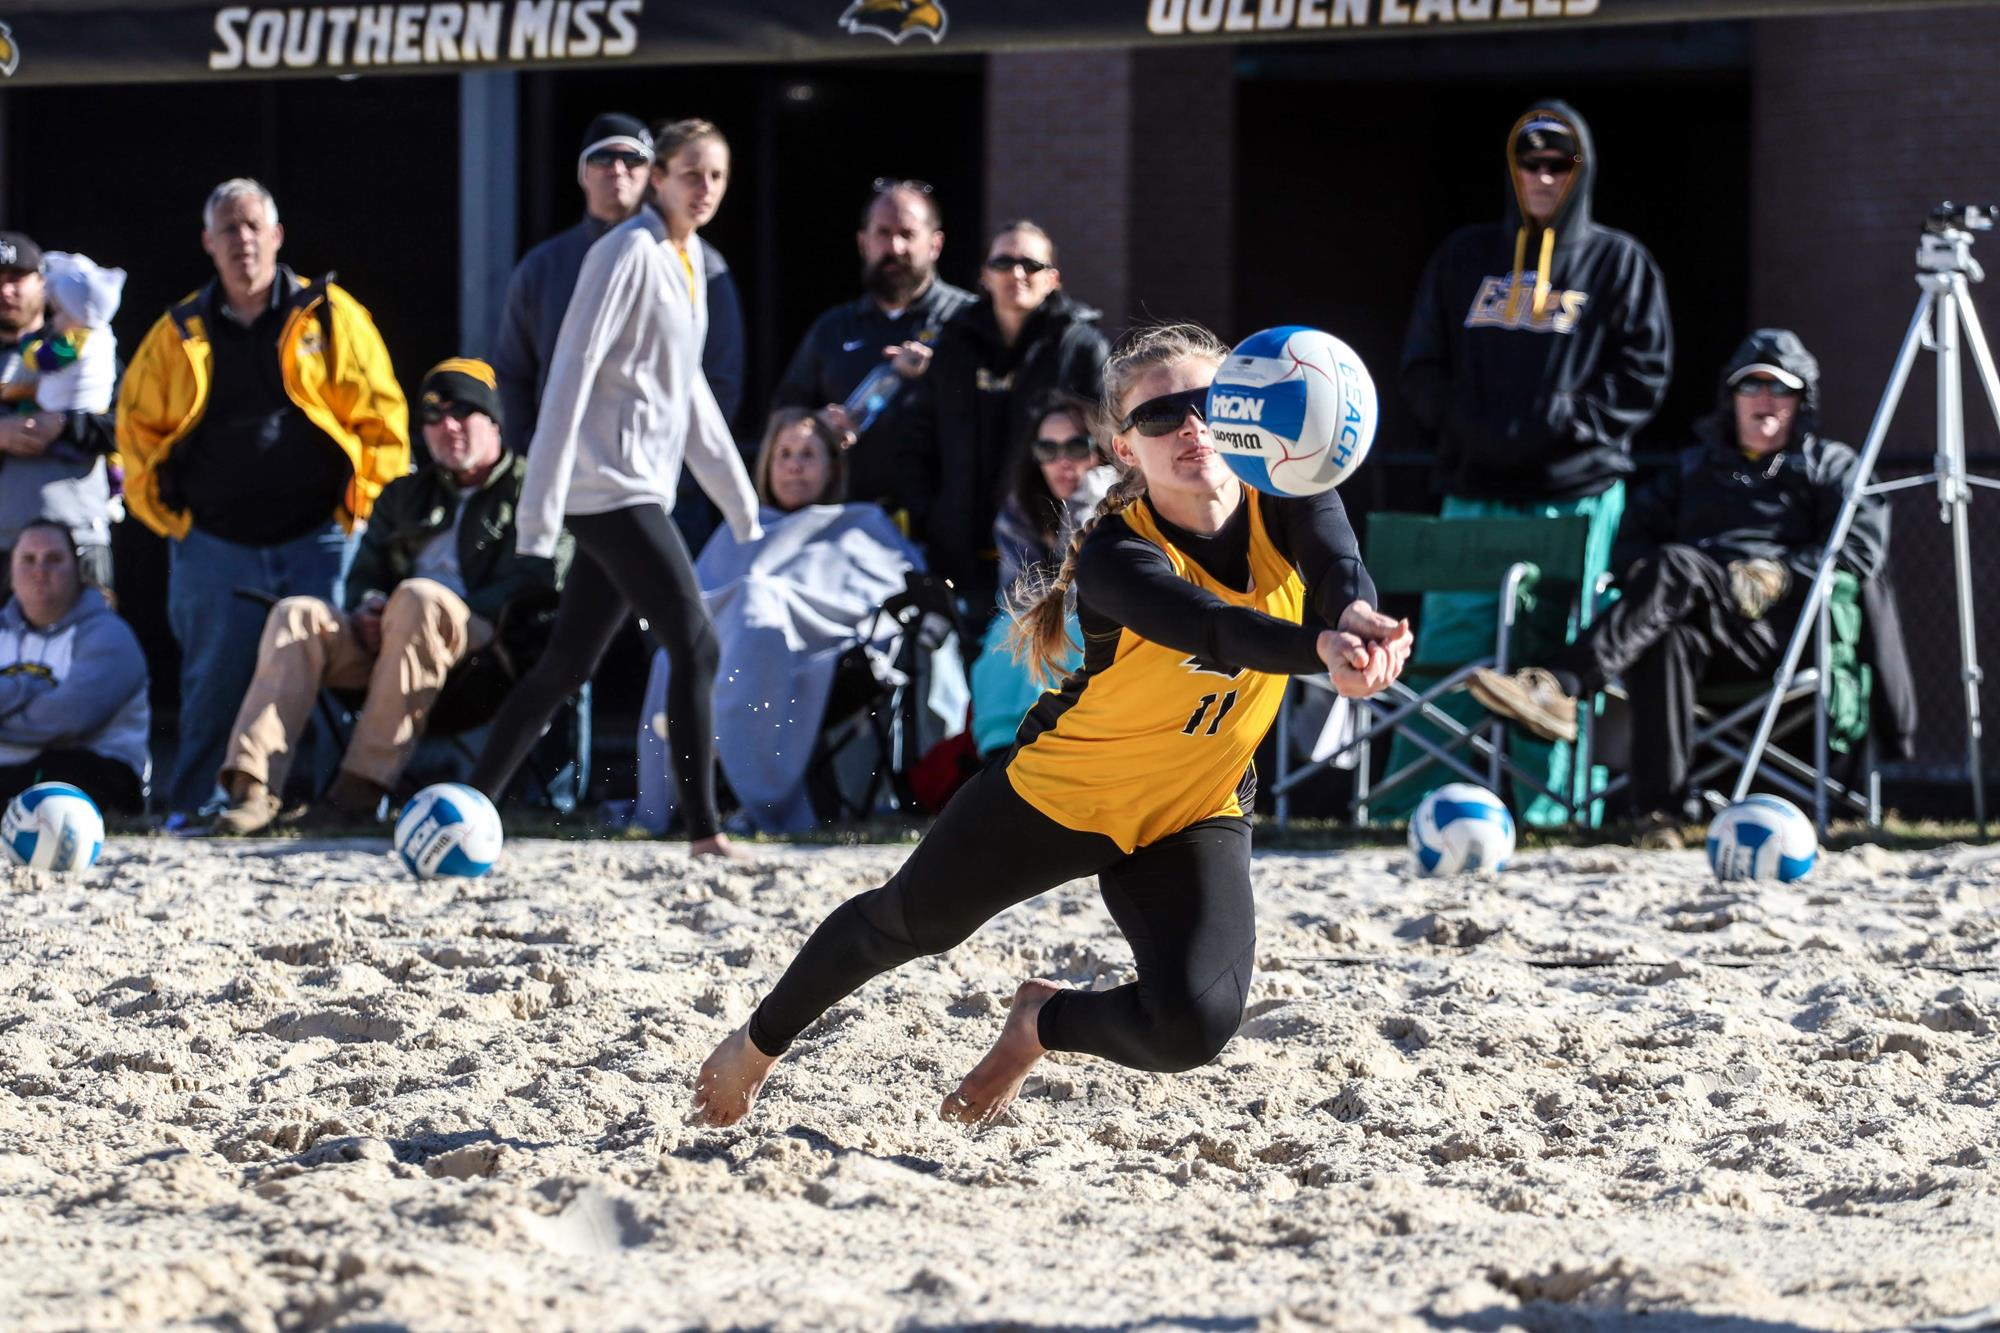 Southern Miss Announces 2020 Beach Volleyball Schedule Southern Miss